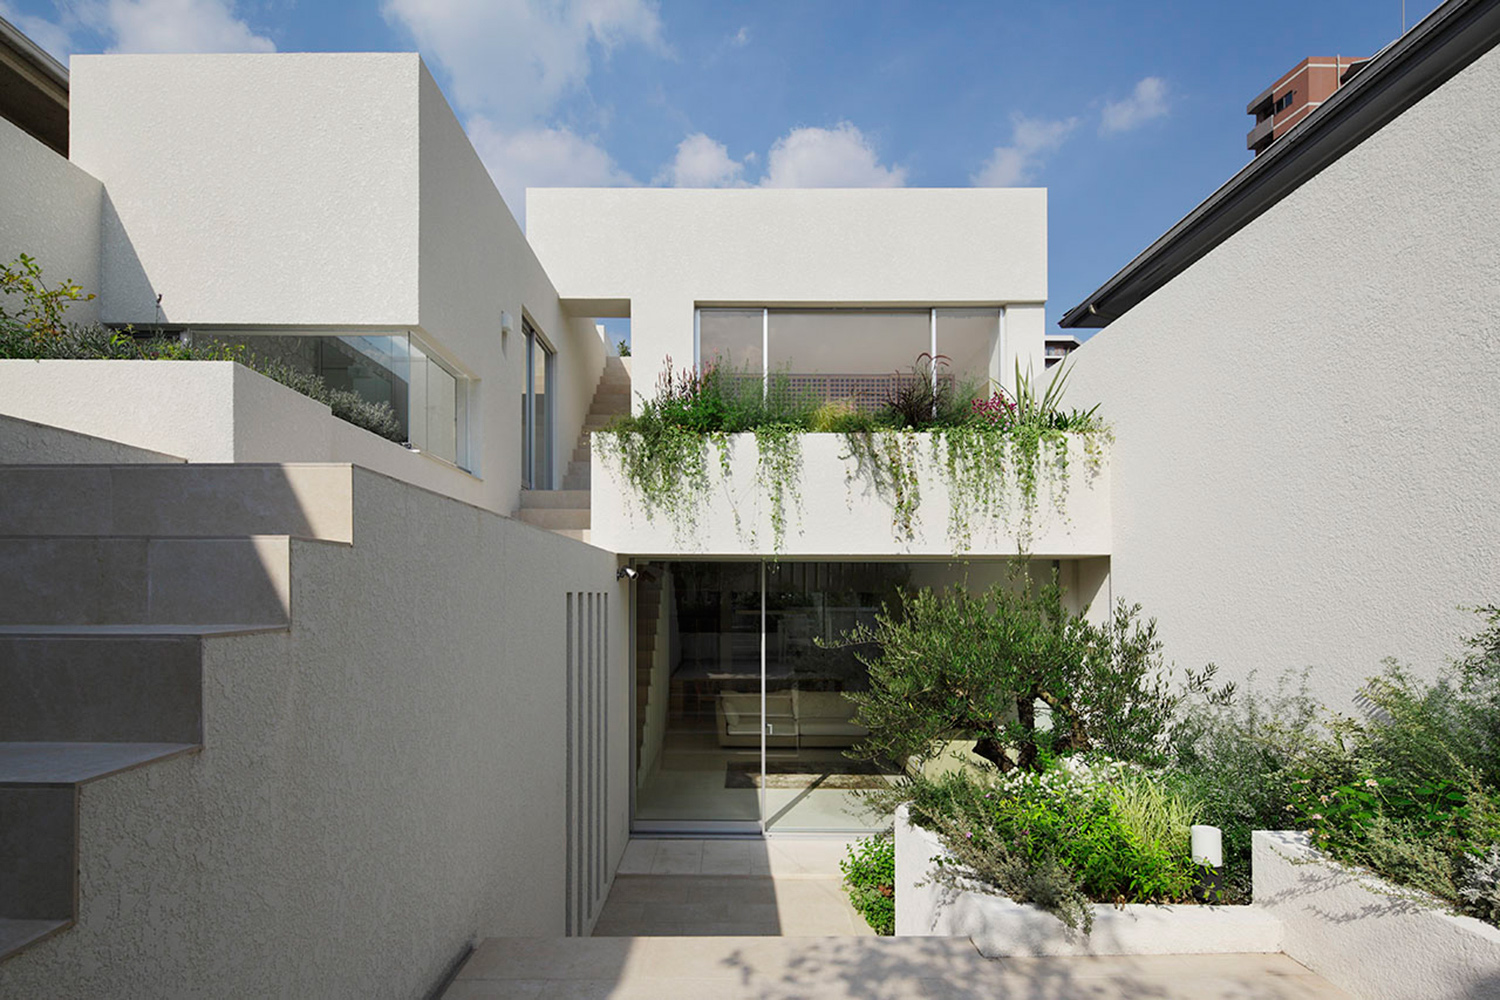 Courtyard.By gathering the gardens together and integrating with the building you can secure a large garden in a narrow site. There is light and wind in it. }